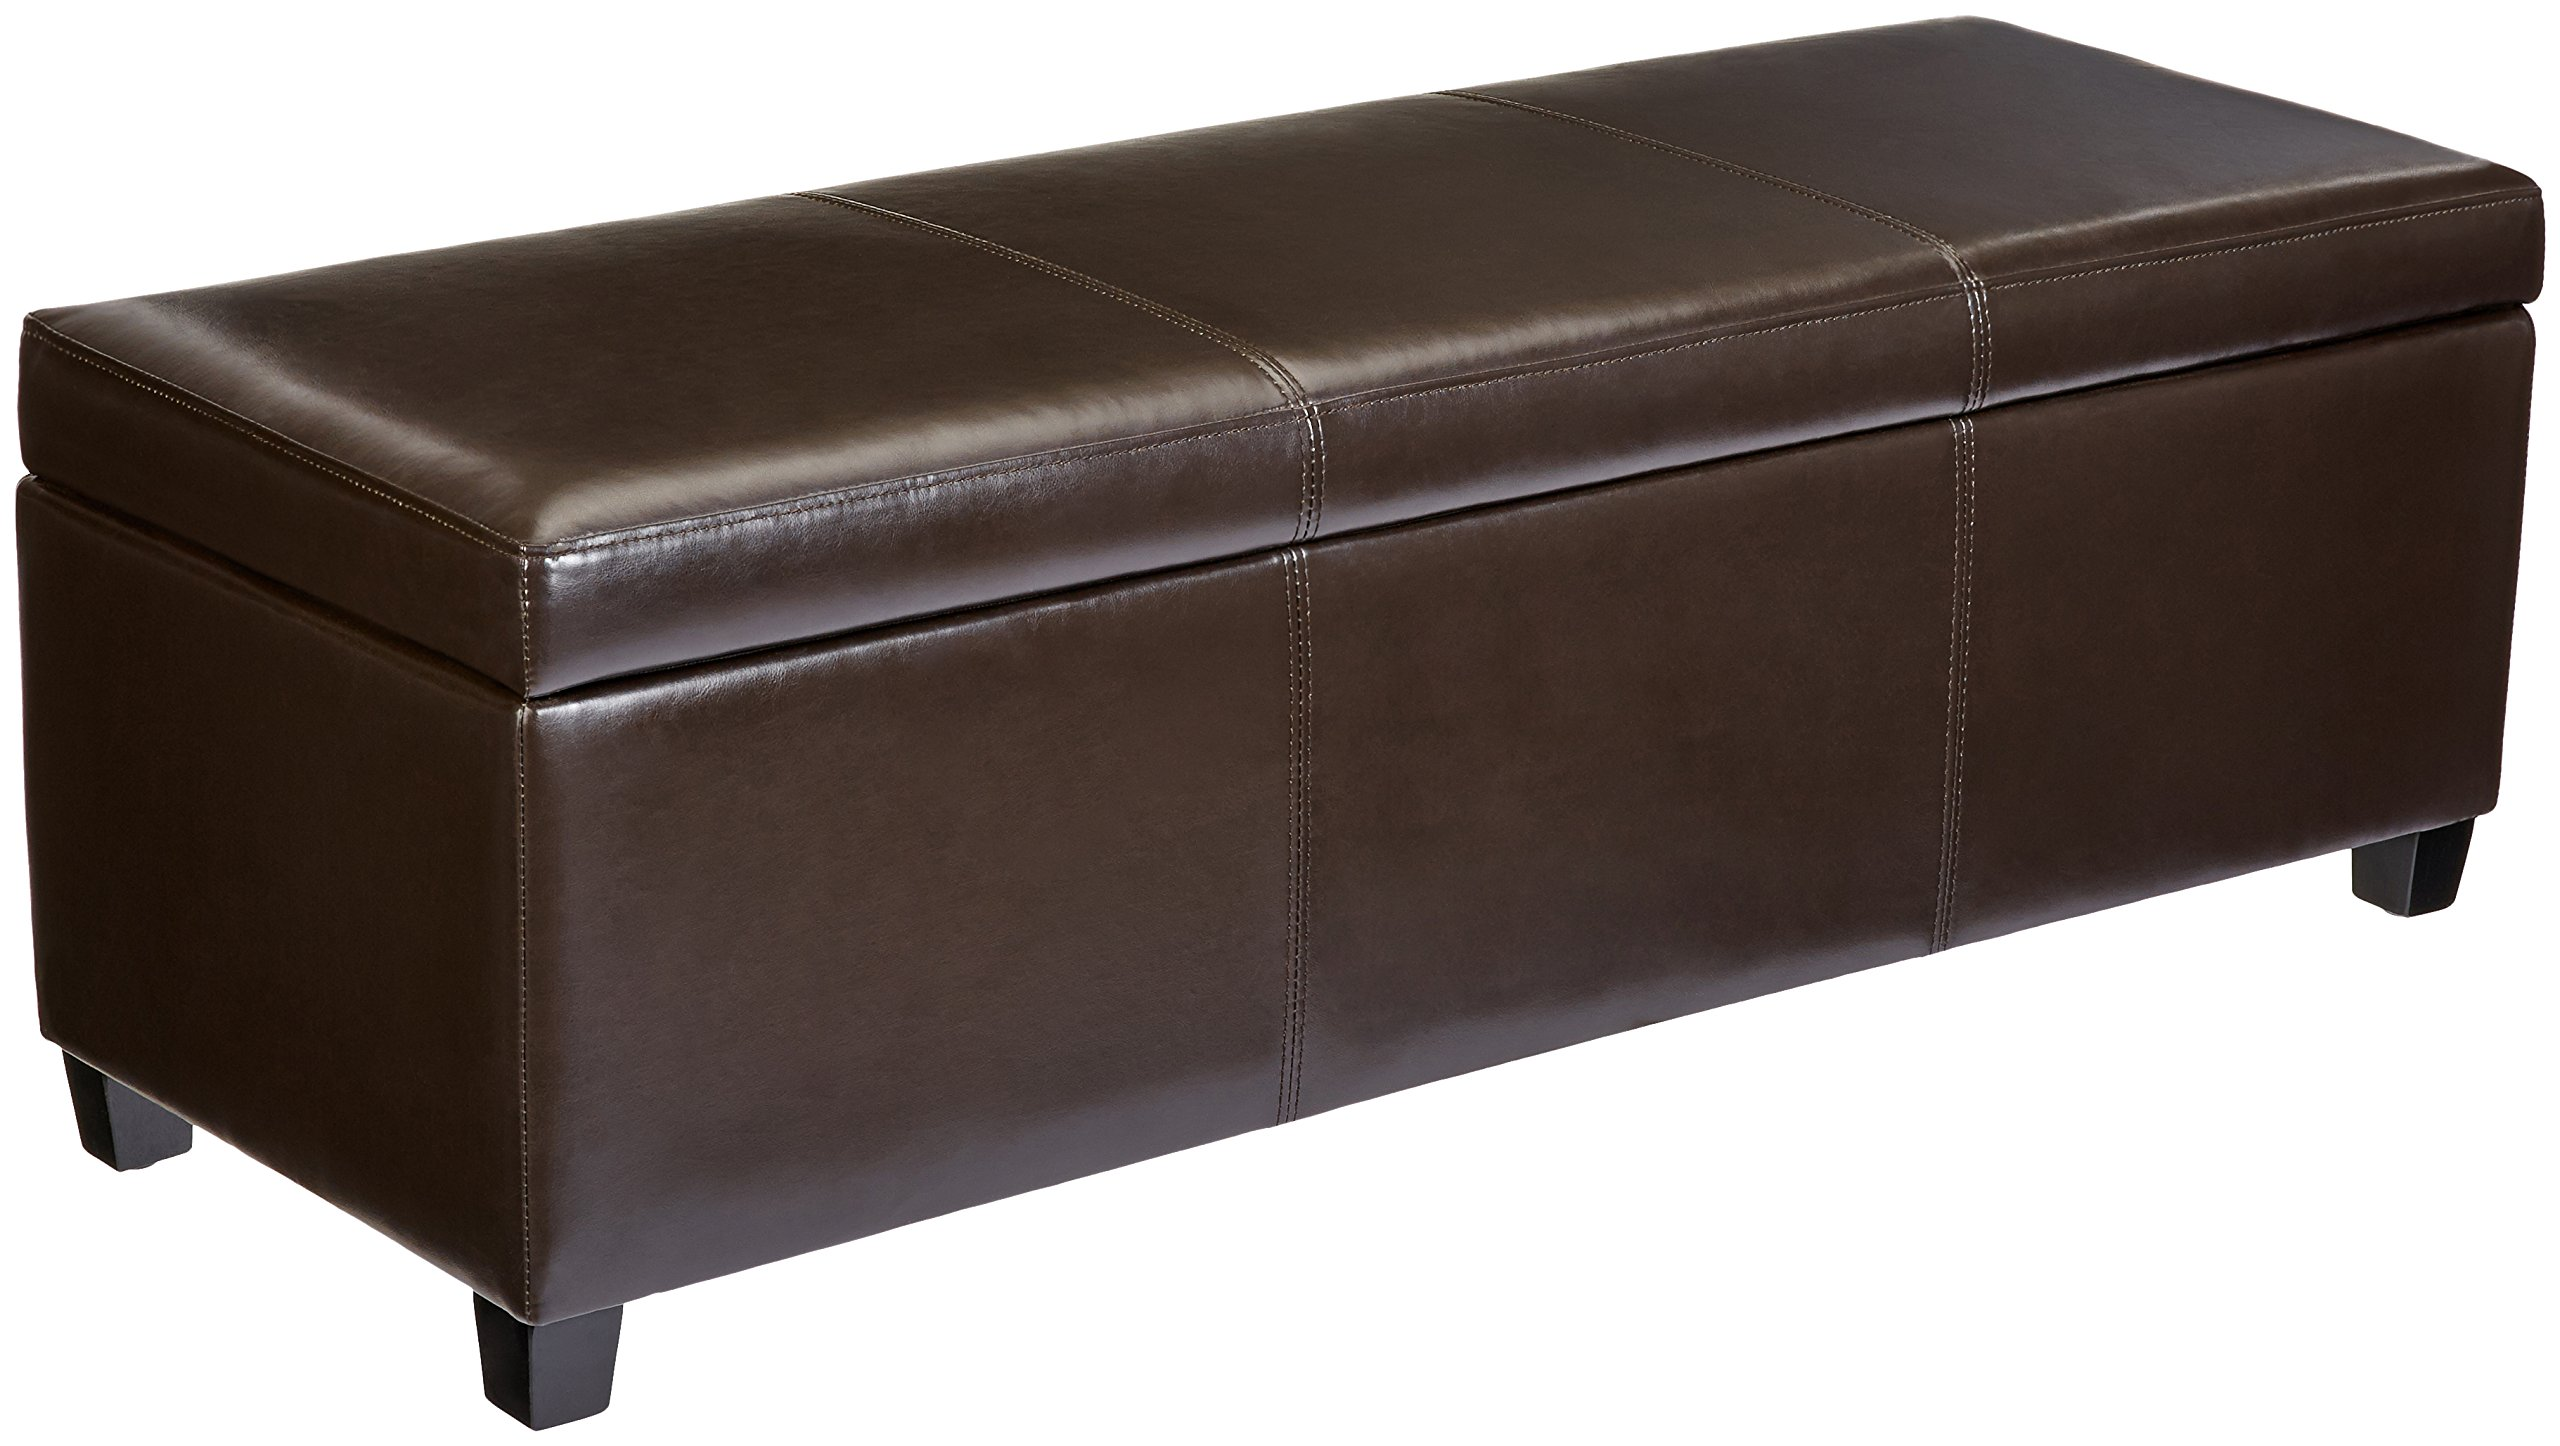 First Hill Madison Rectangular Faux Leather Storage Ottoman Bench, Large, Espresso Brown by First Hill